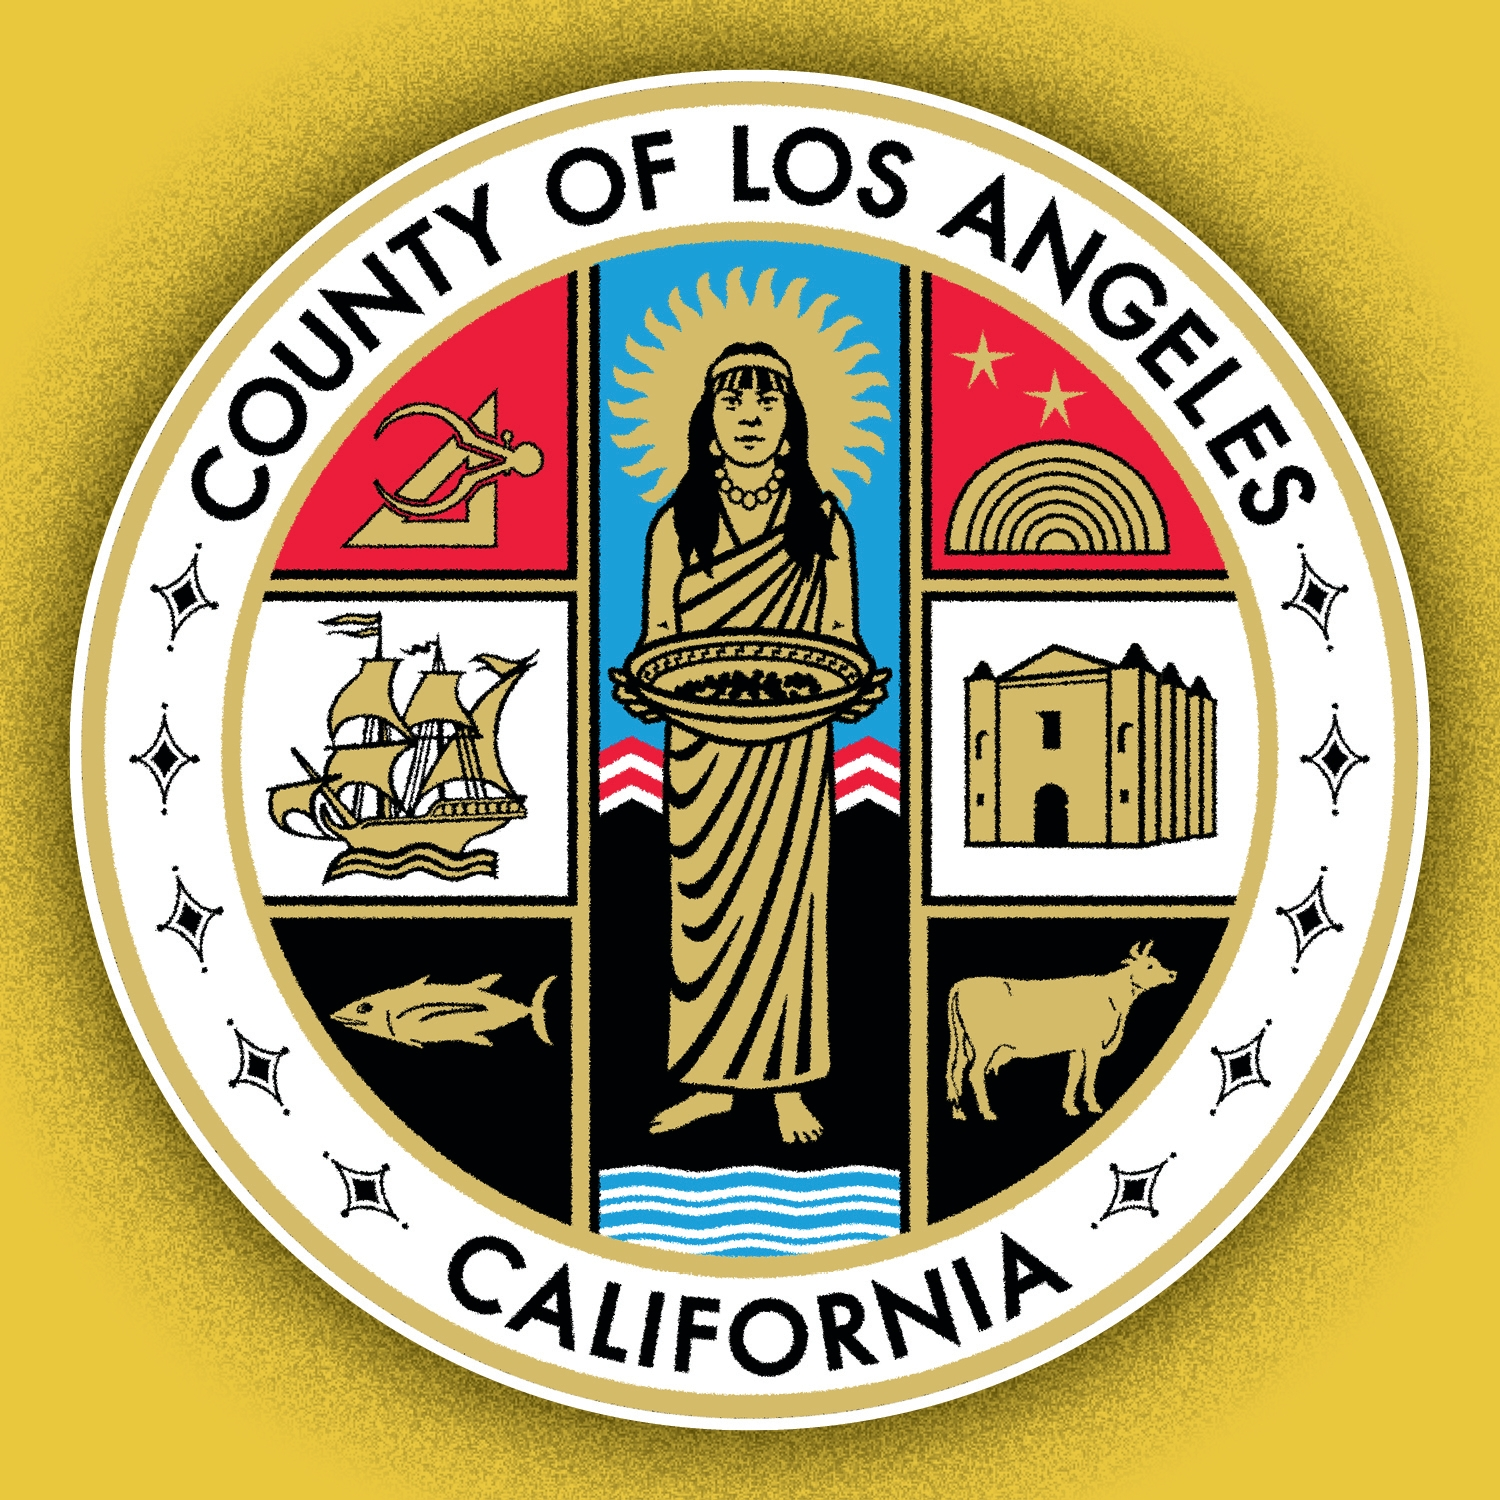 Illustration of L.A. County seal